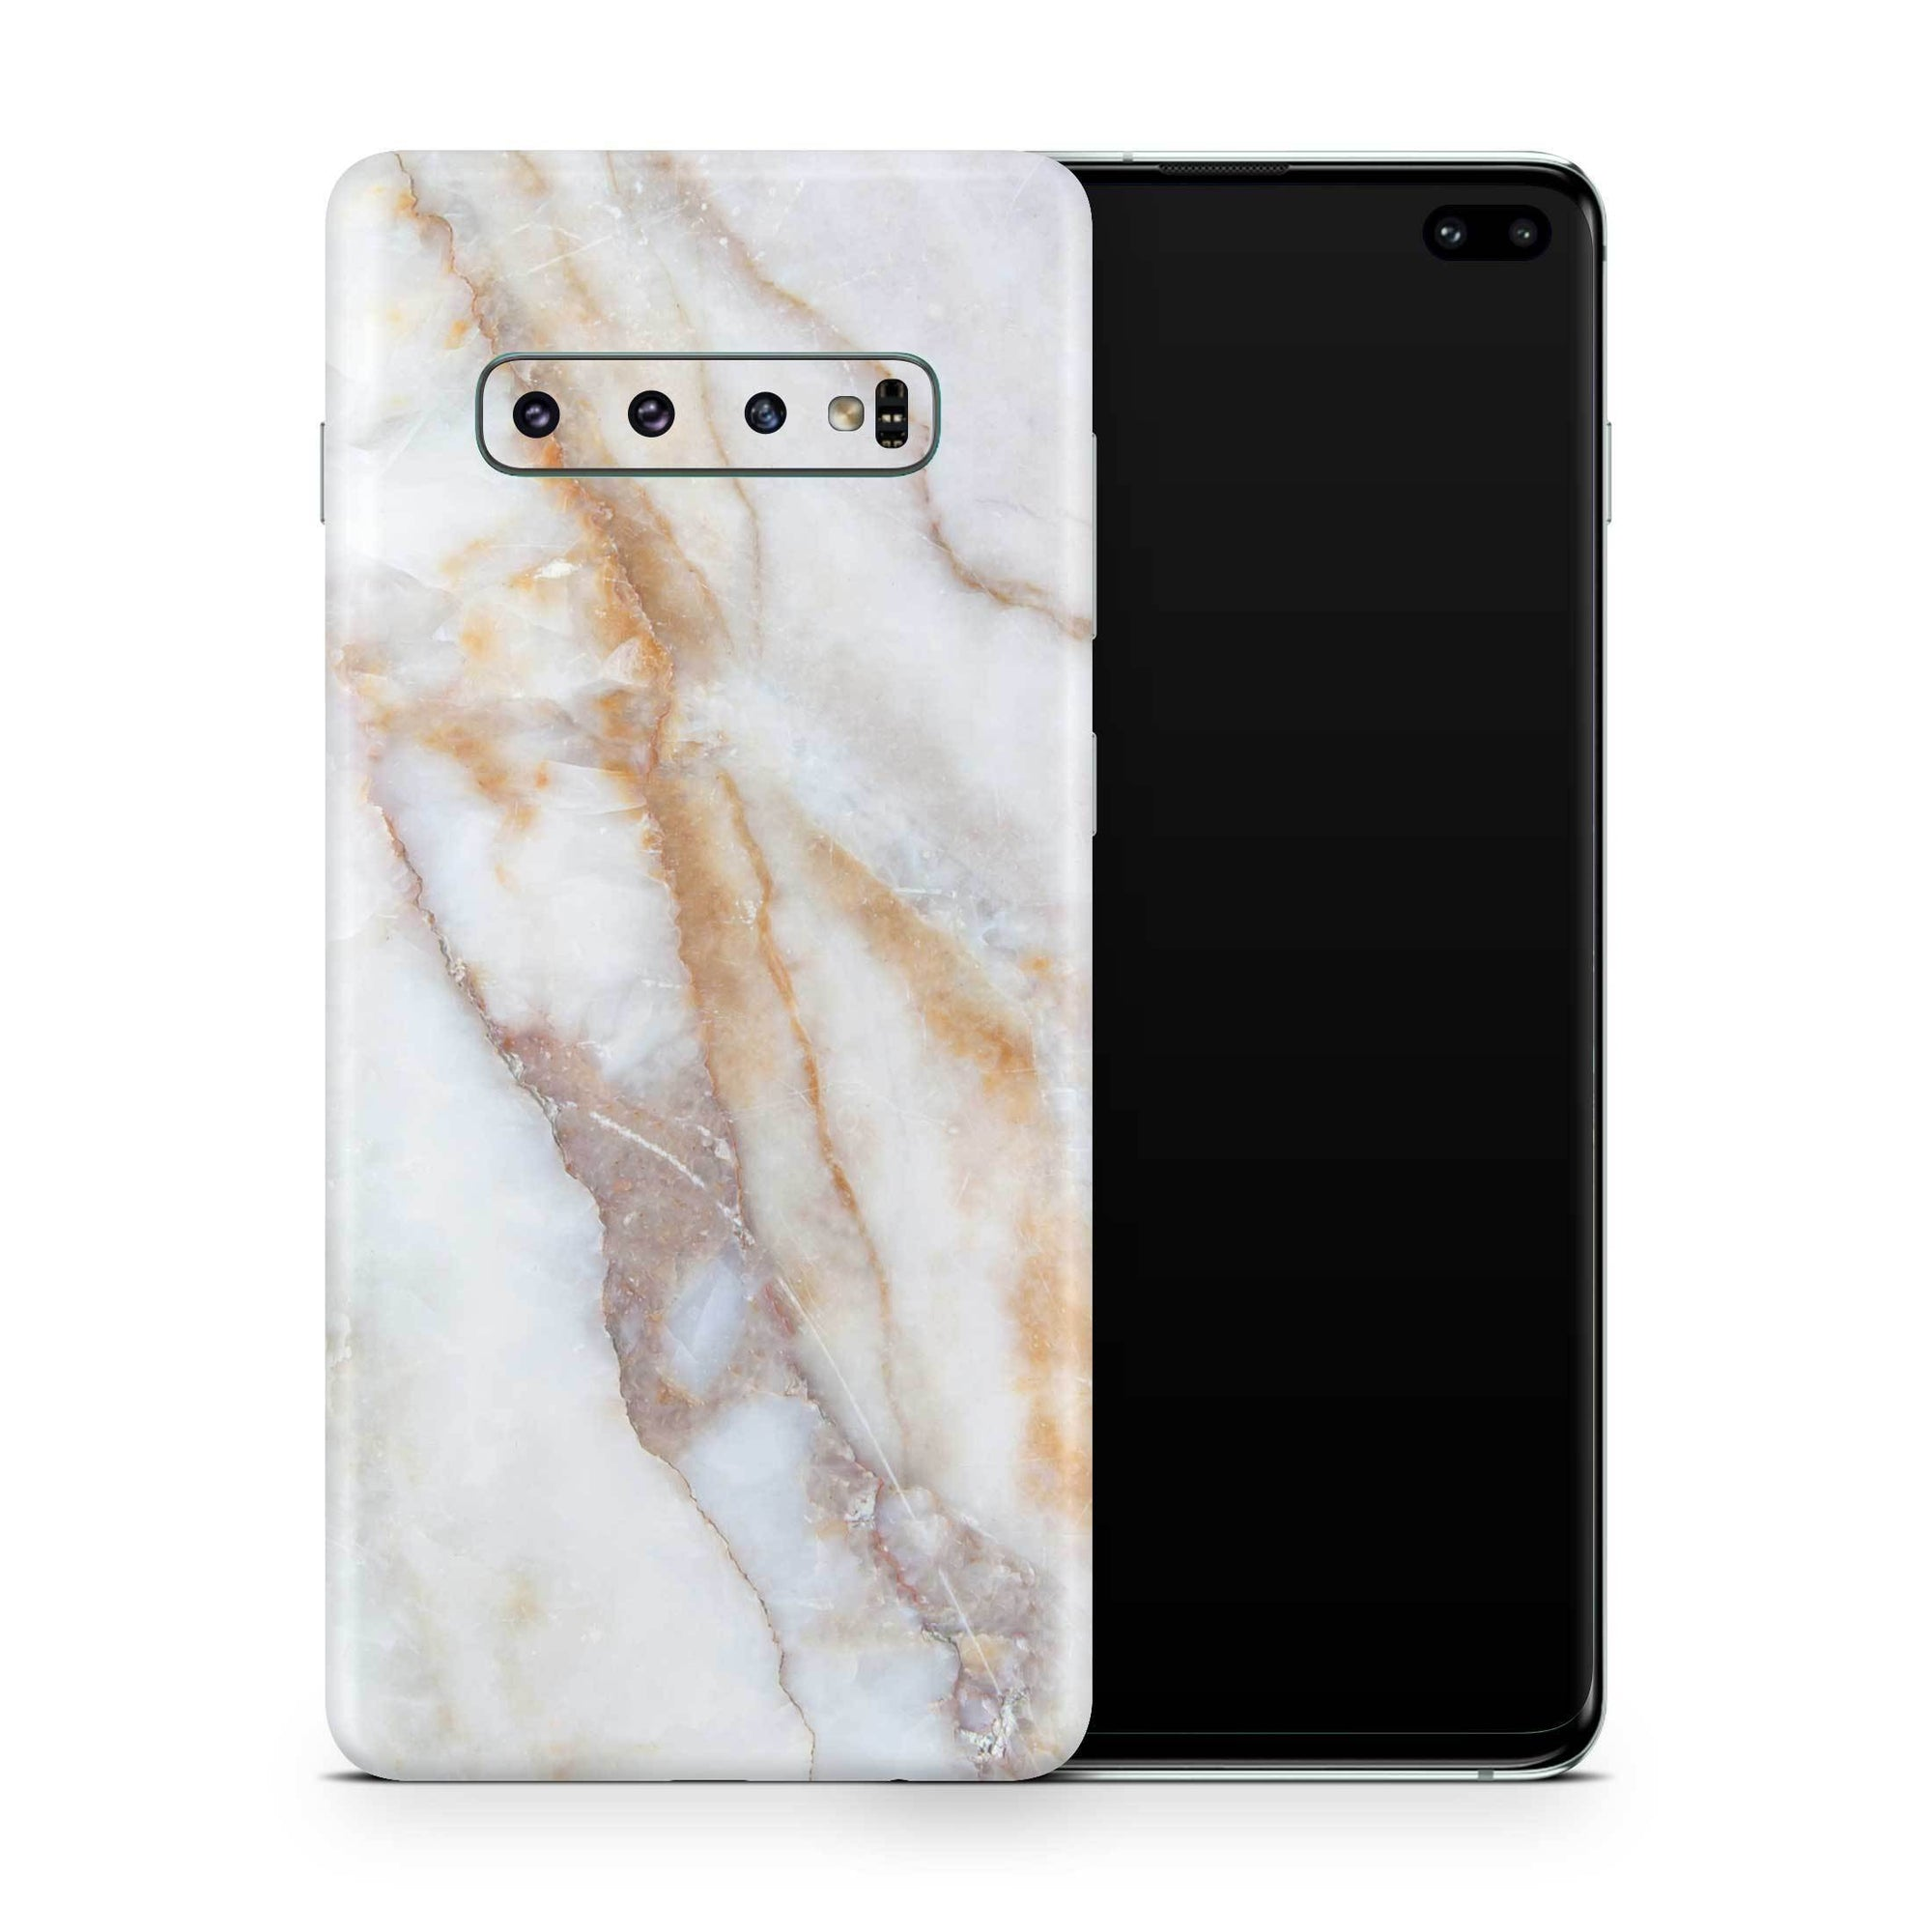 Vanilla Marble Galaxy S10 Plus Skin + Case